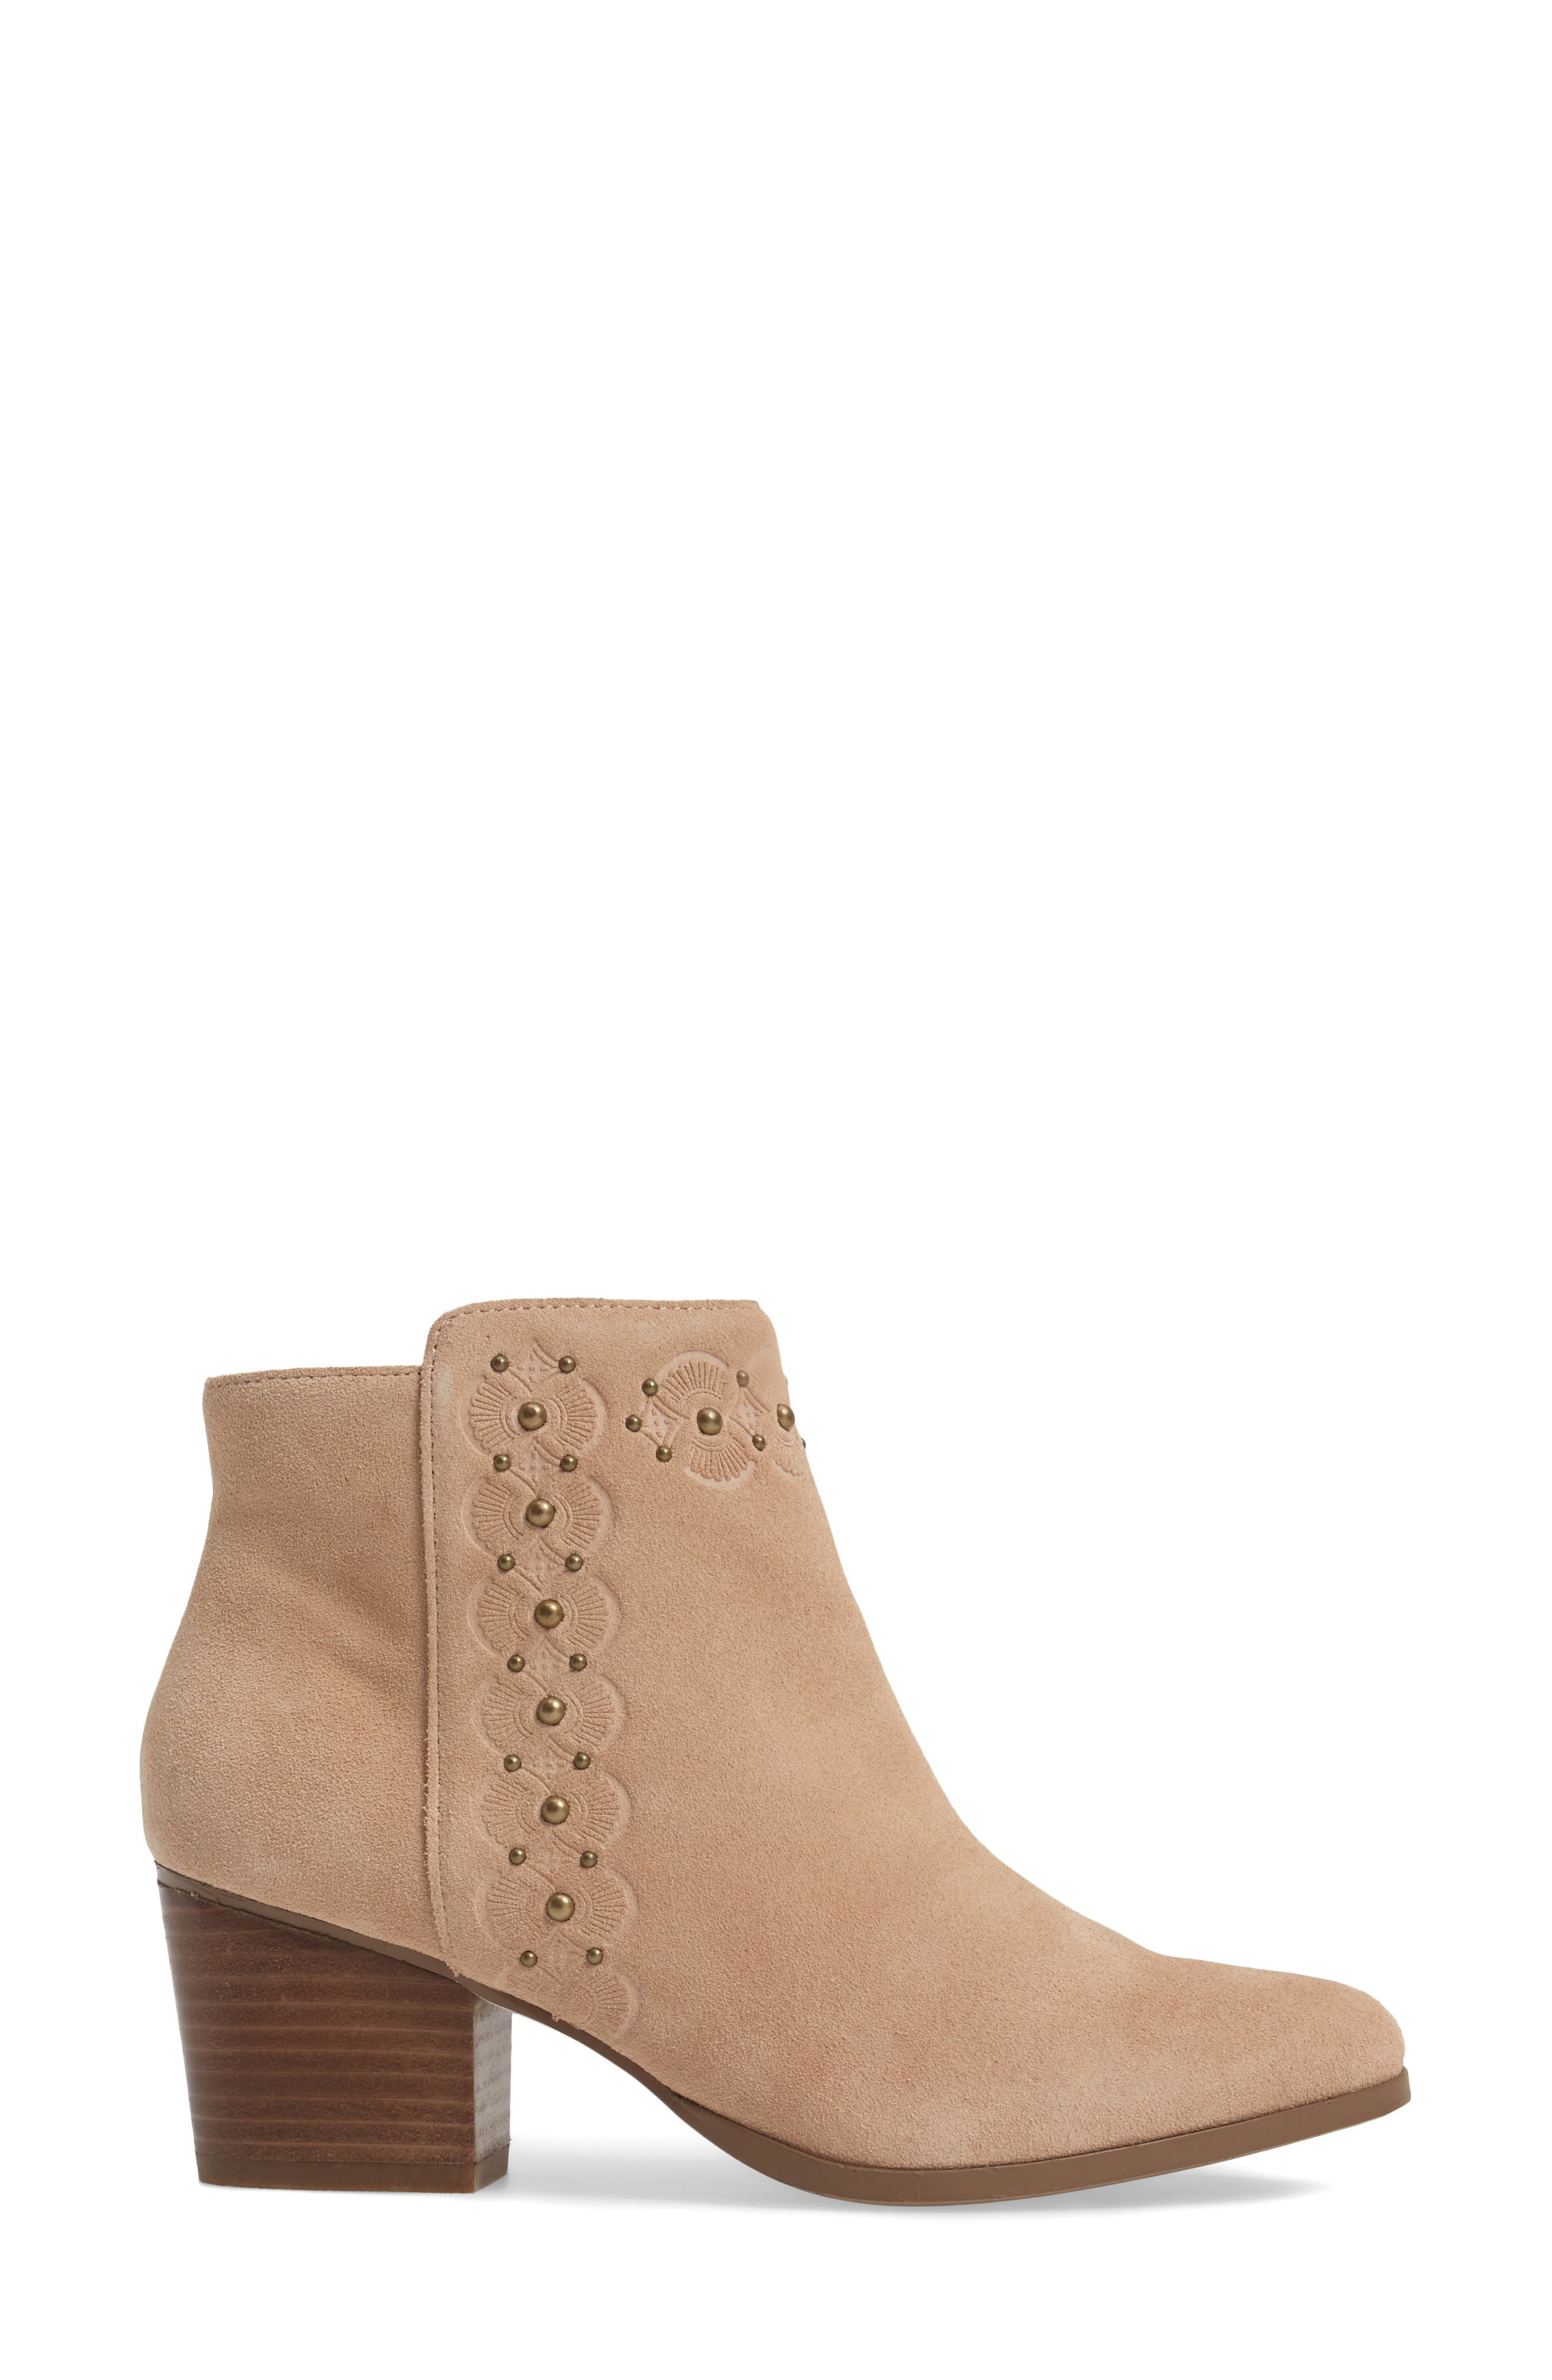 Alternate Image 3  - Sole Society Gala Studded Embossed Bootie (Women)